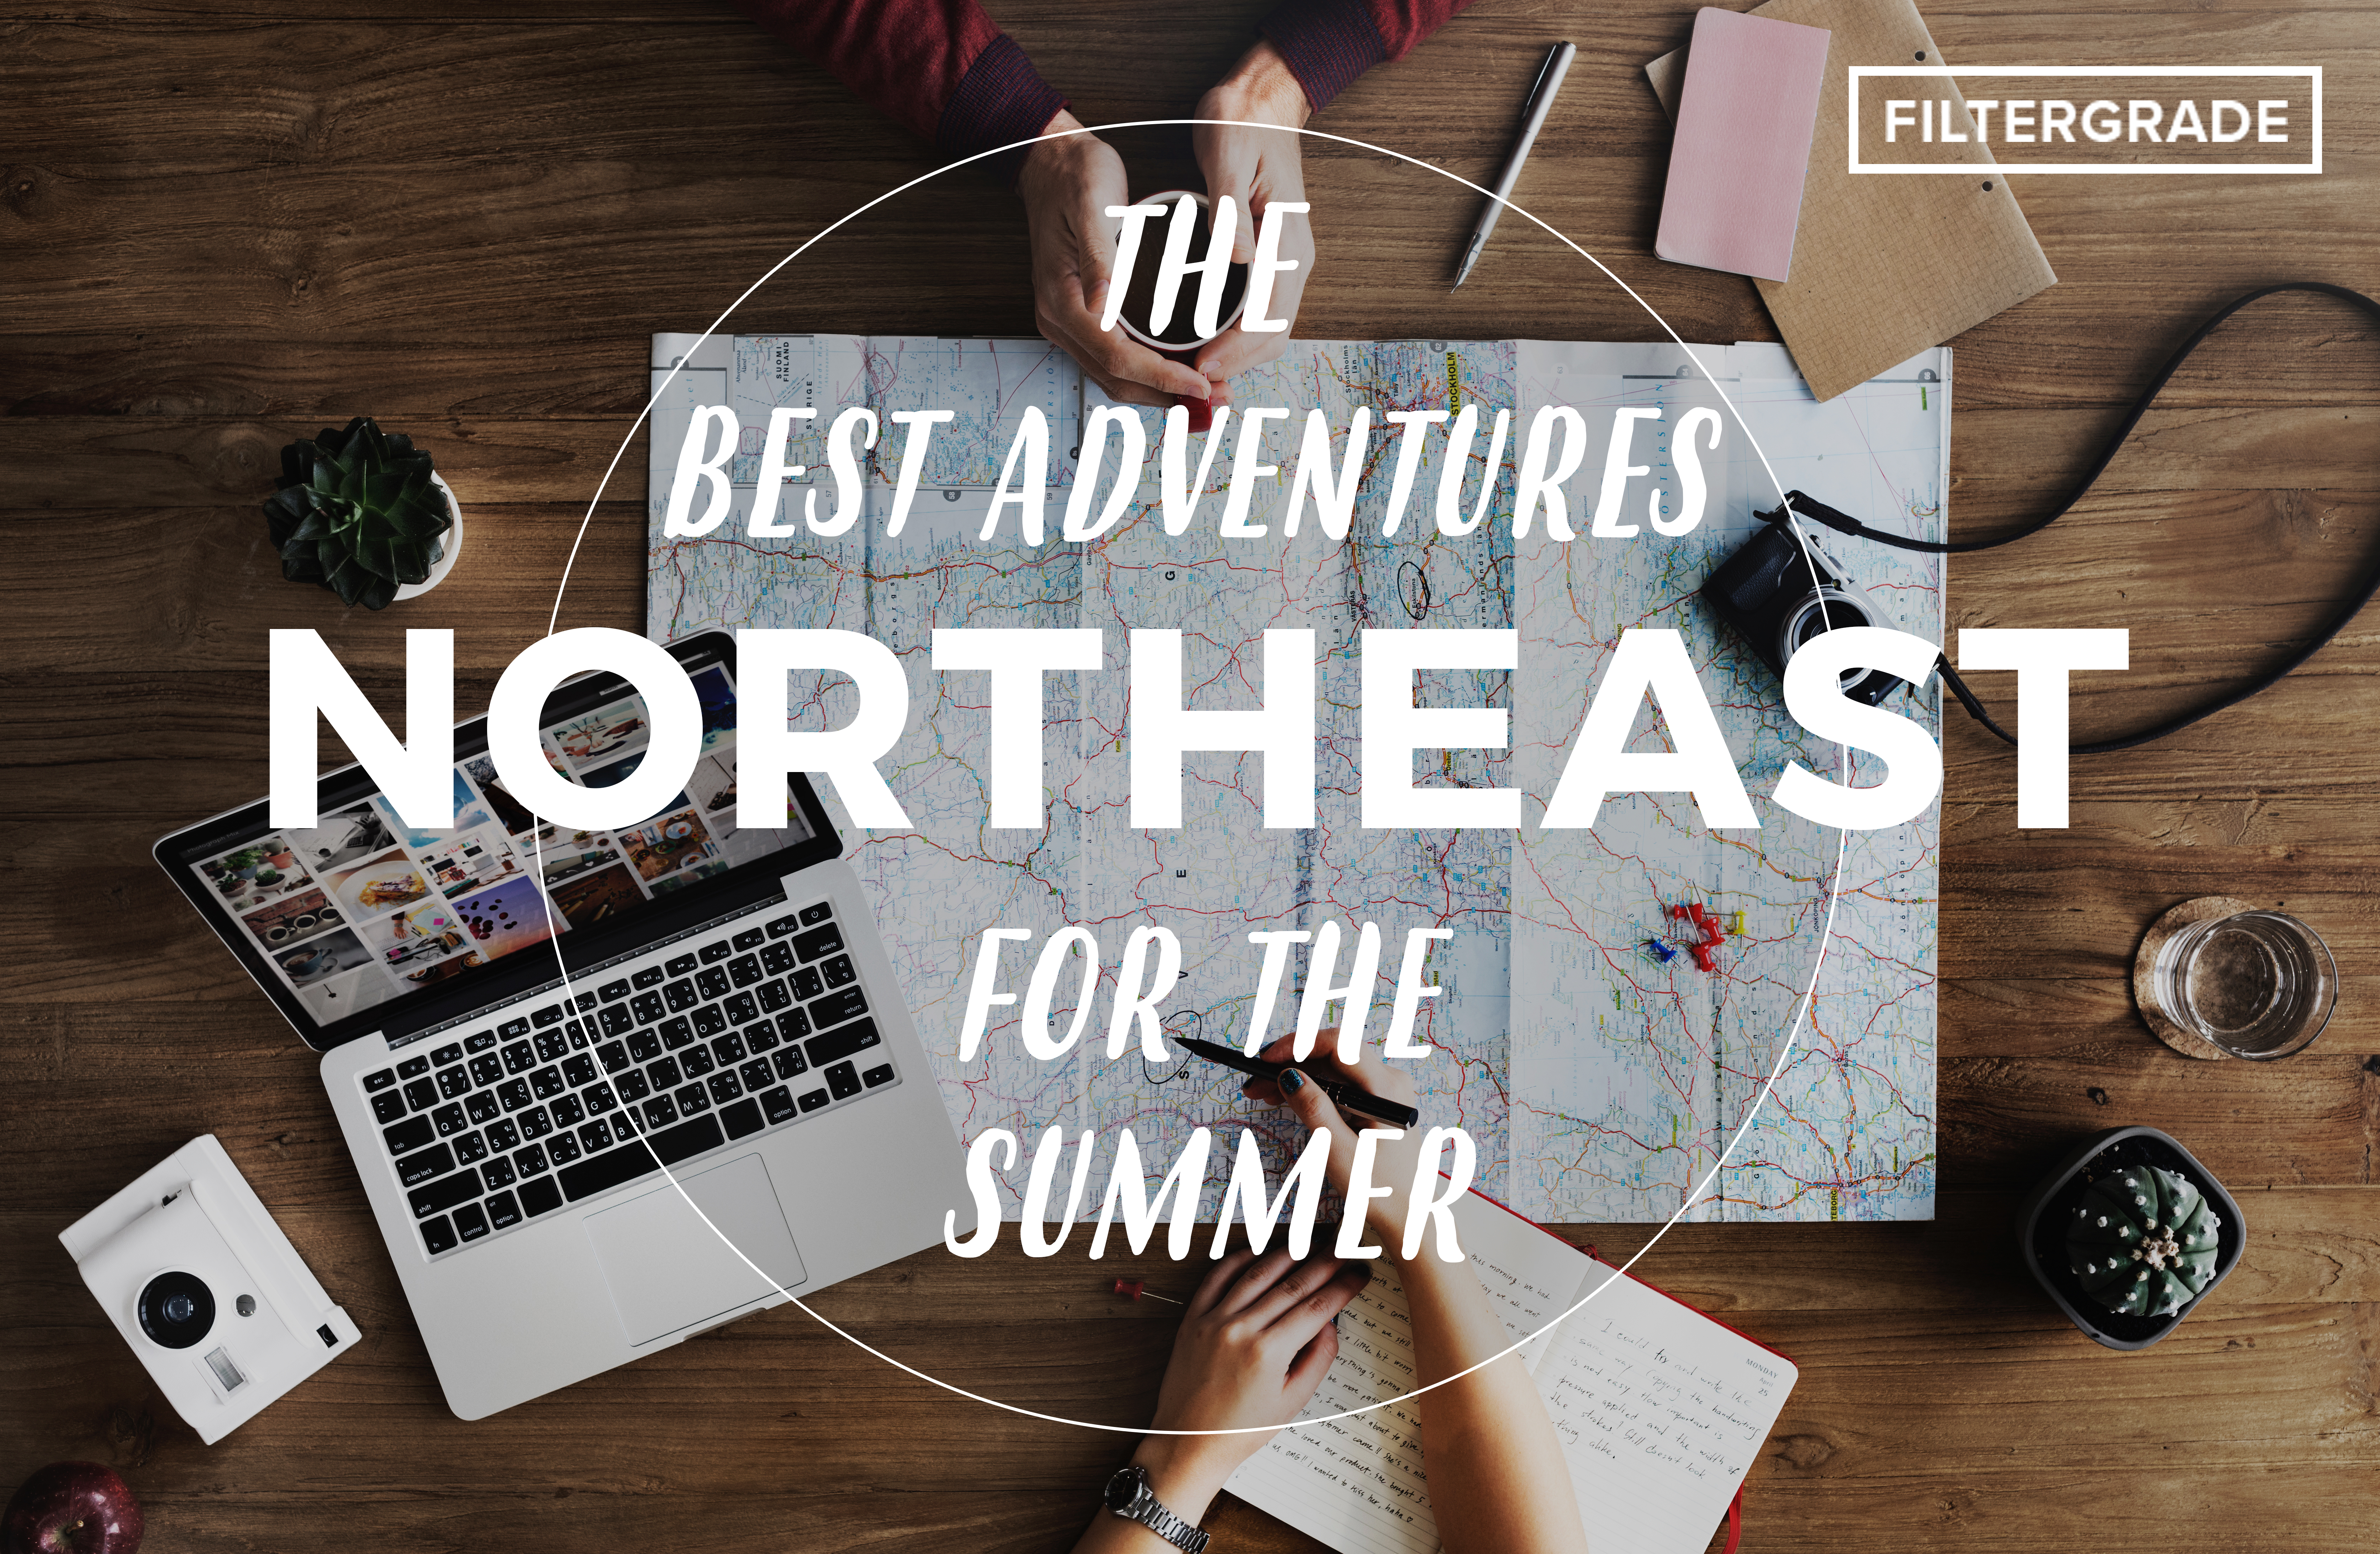 The Best Adventures of the Summer - The North East - FilterGrade Blog